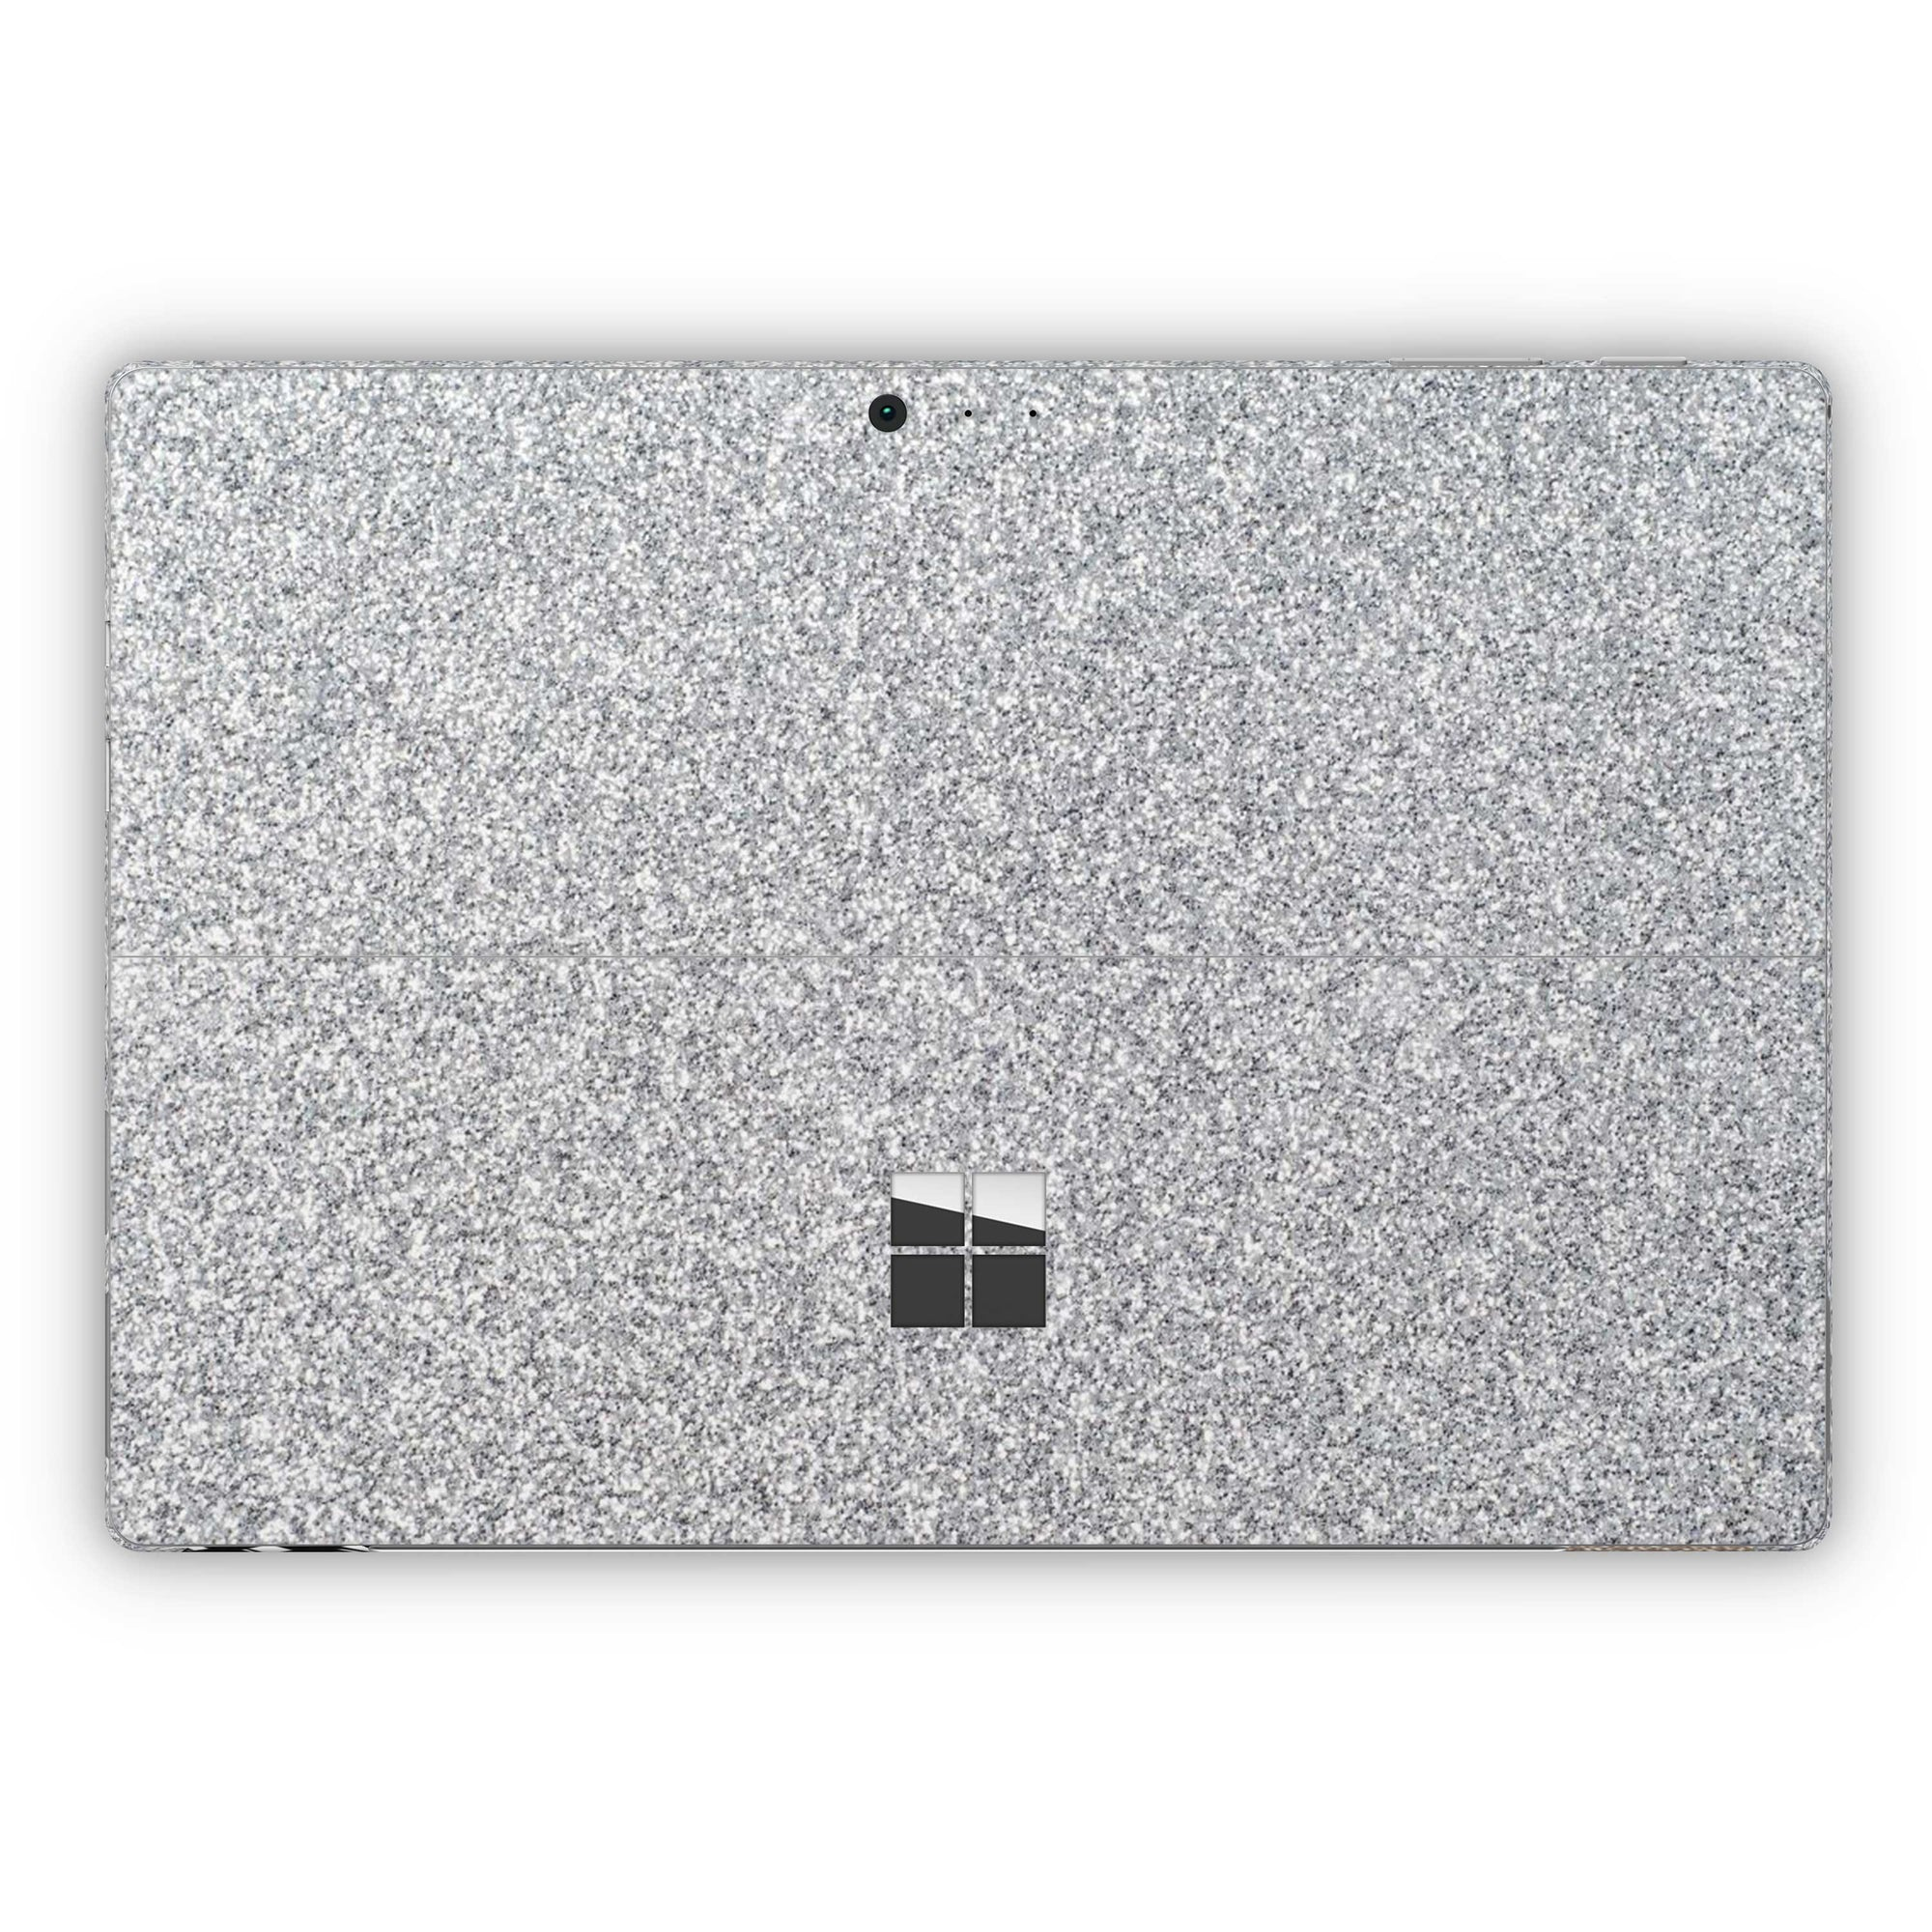 Blanc Glitter Surface Pro 5 and Surface Pro 6 Skin